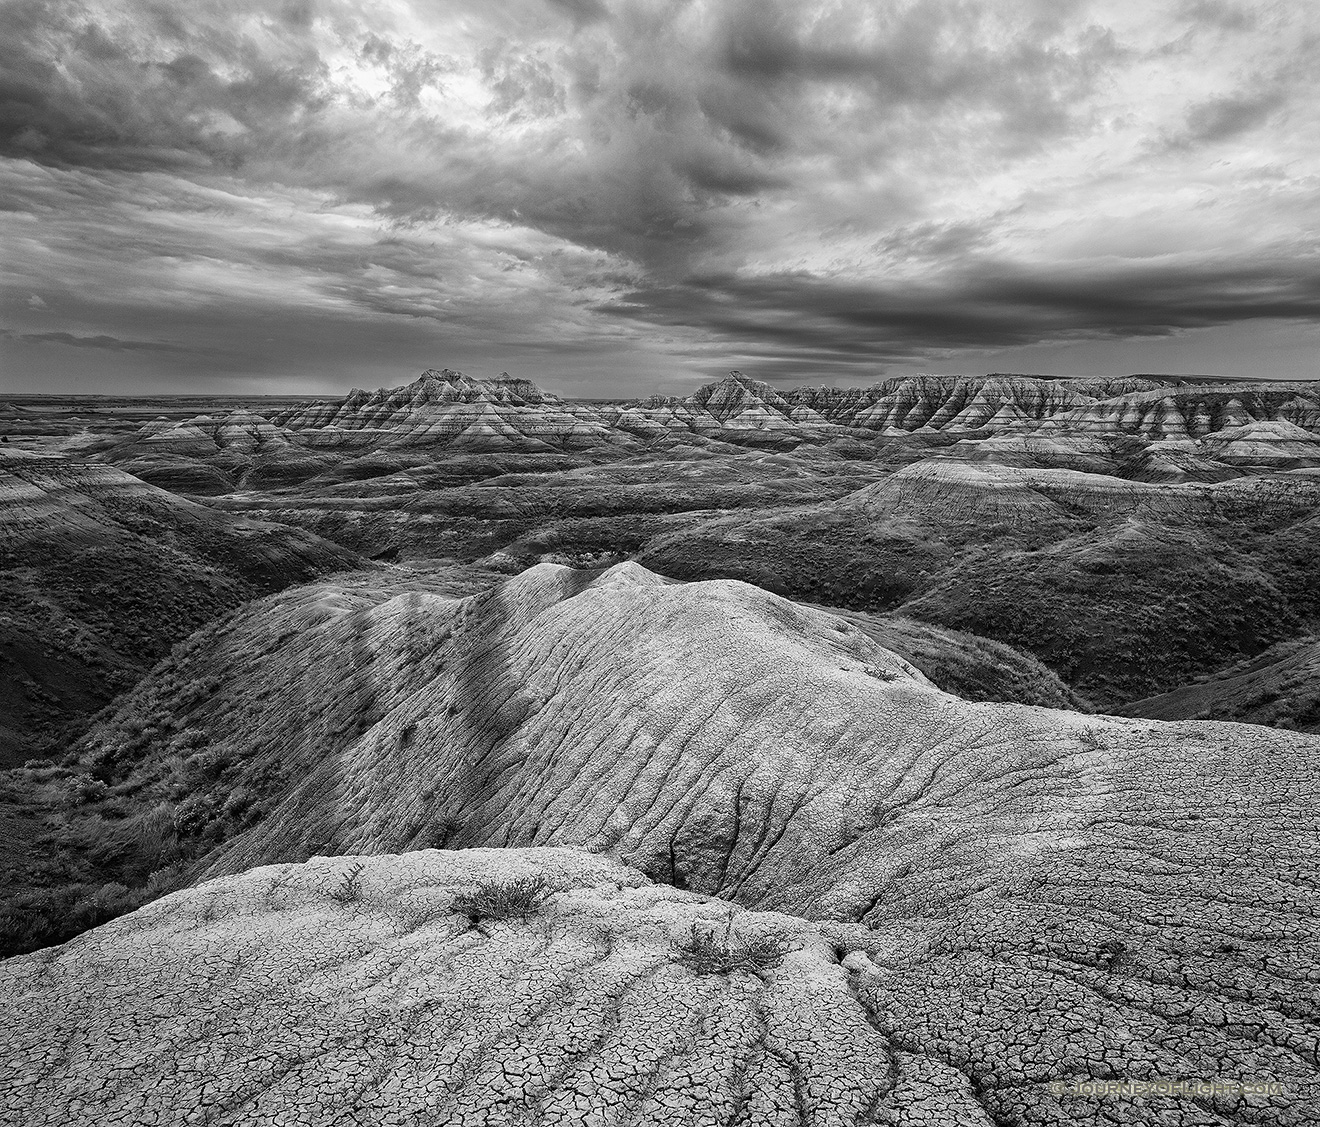 Rocks and formations under stormy skies in Badlands National Park, South Dakota. - South Dakota Picture